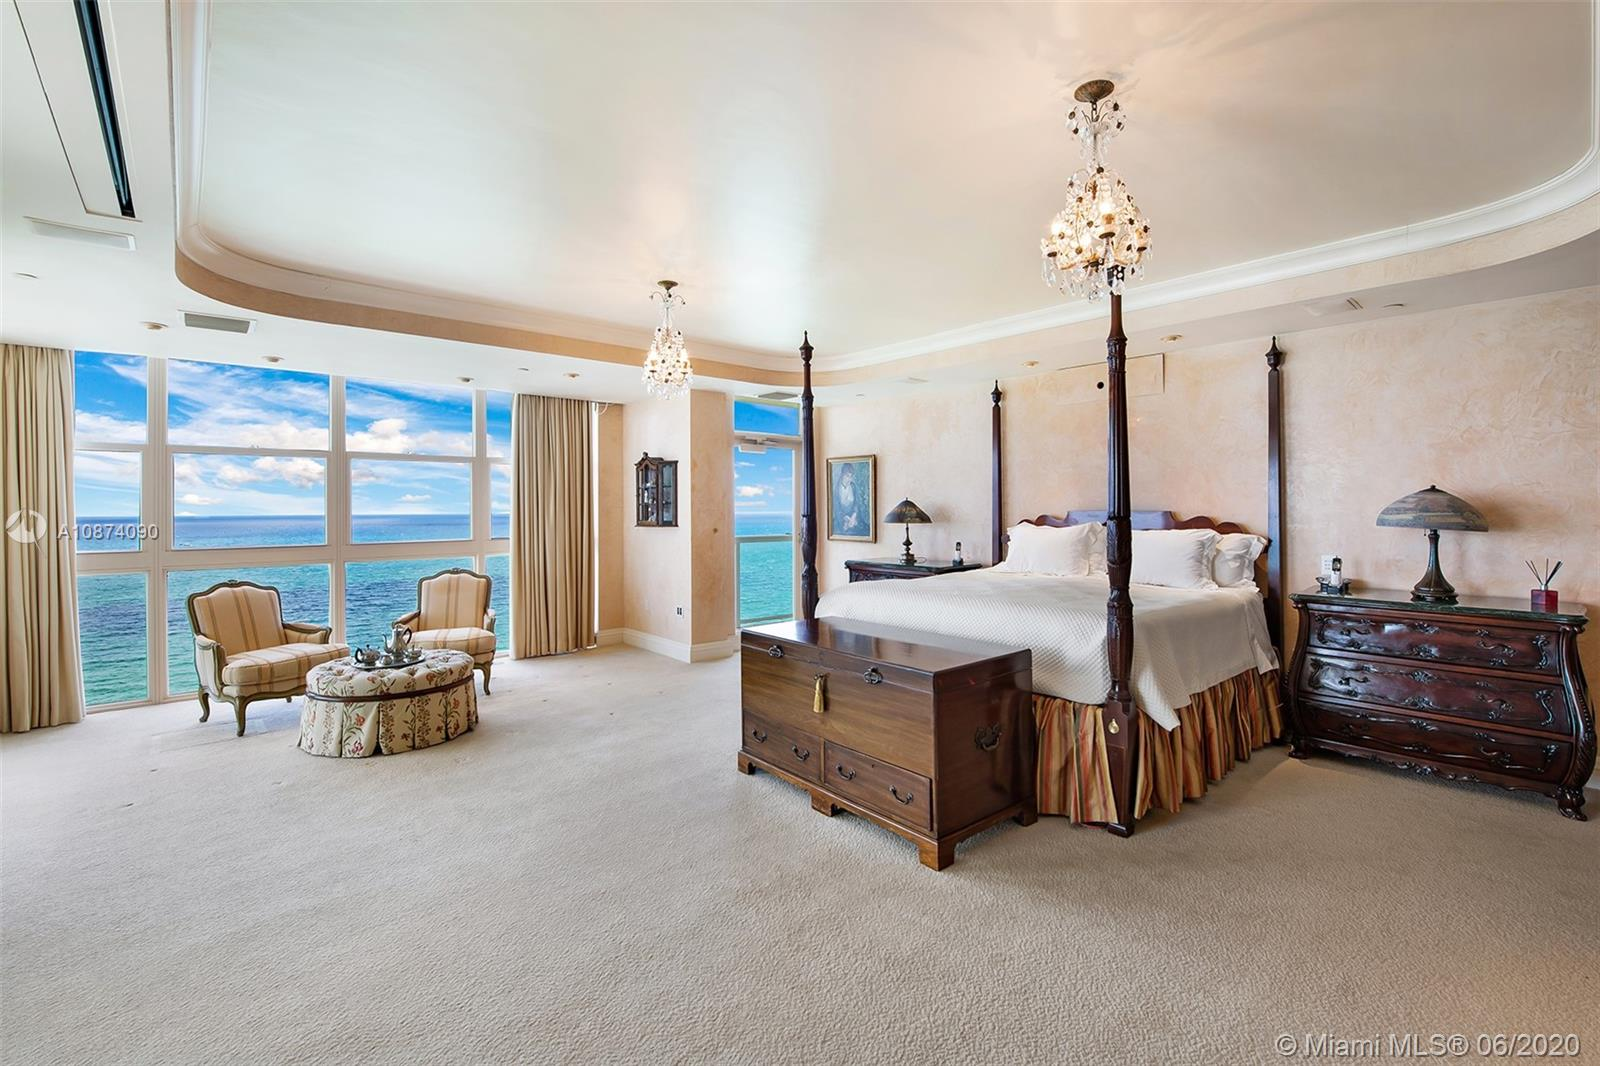 Photo of 6051 Ocean Dr #PH5, Hollywood, Florida, 33019 - Master bedroom suite